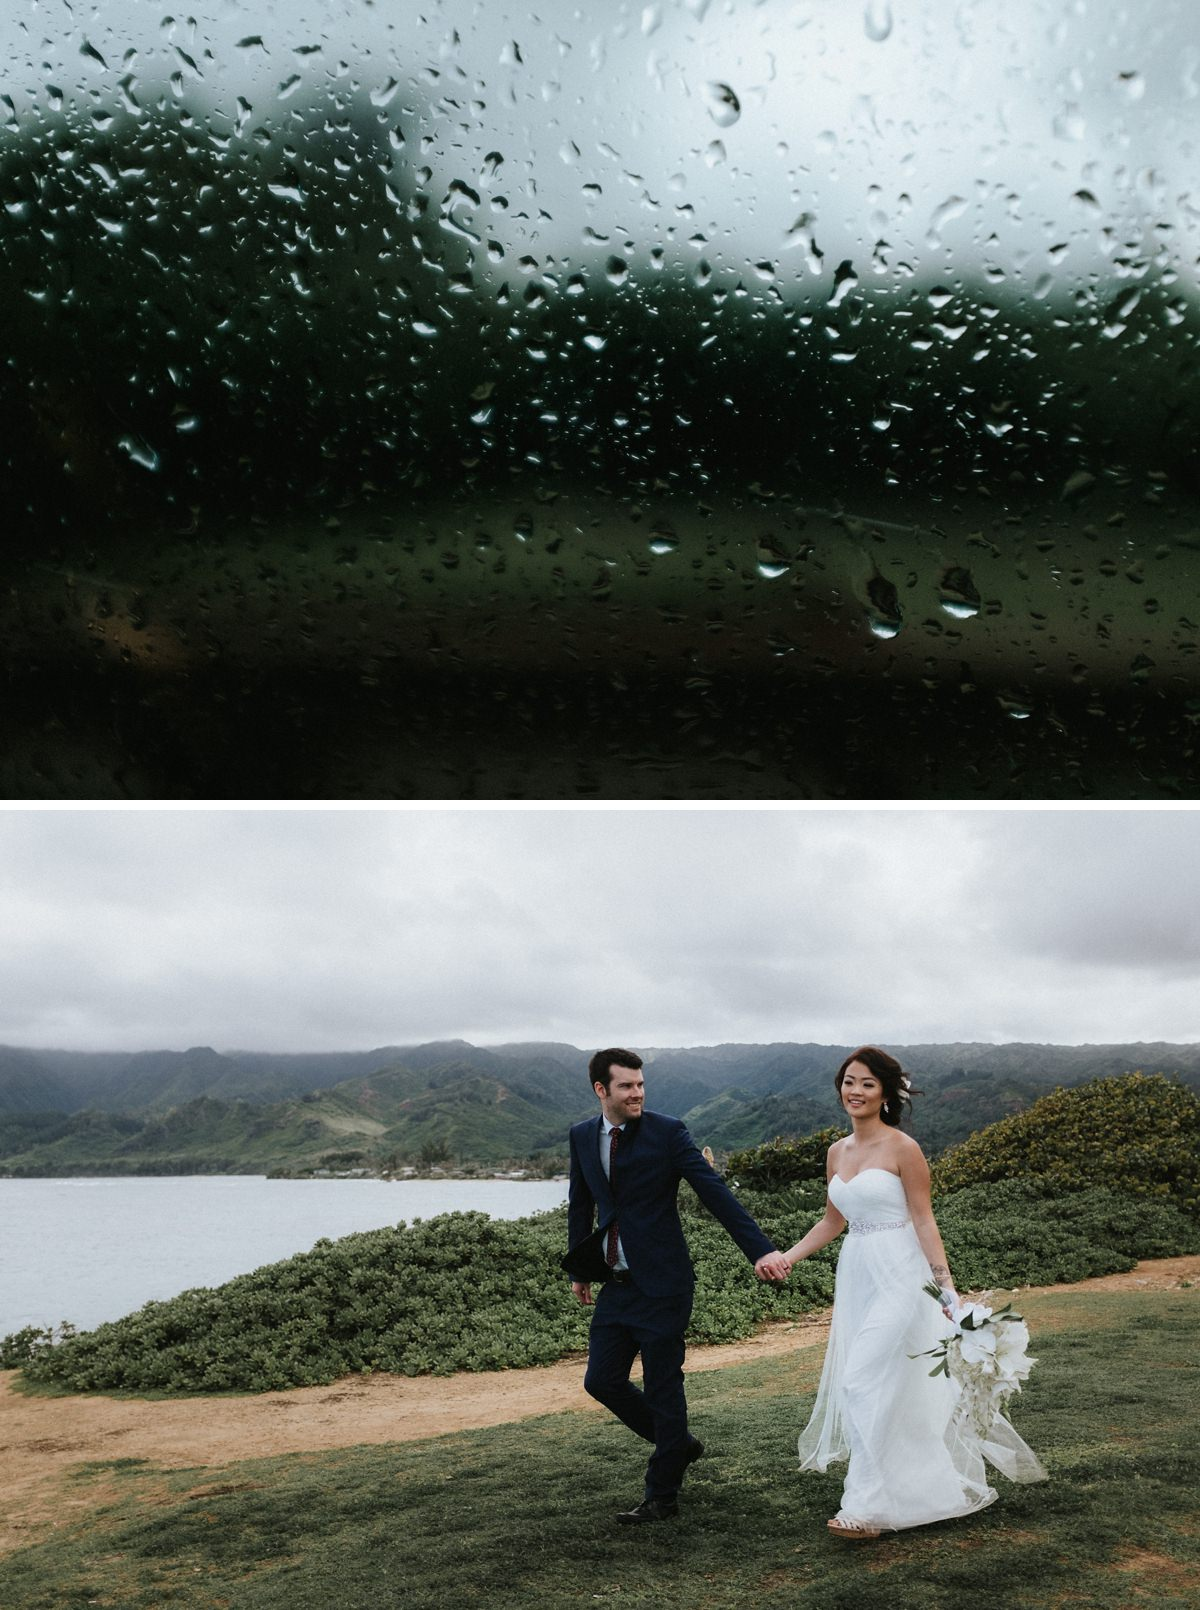 Bride and groom walking on the coast of Hawaii with mountains in the background